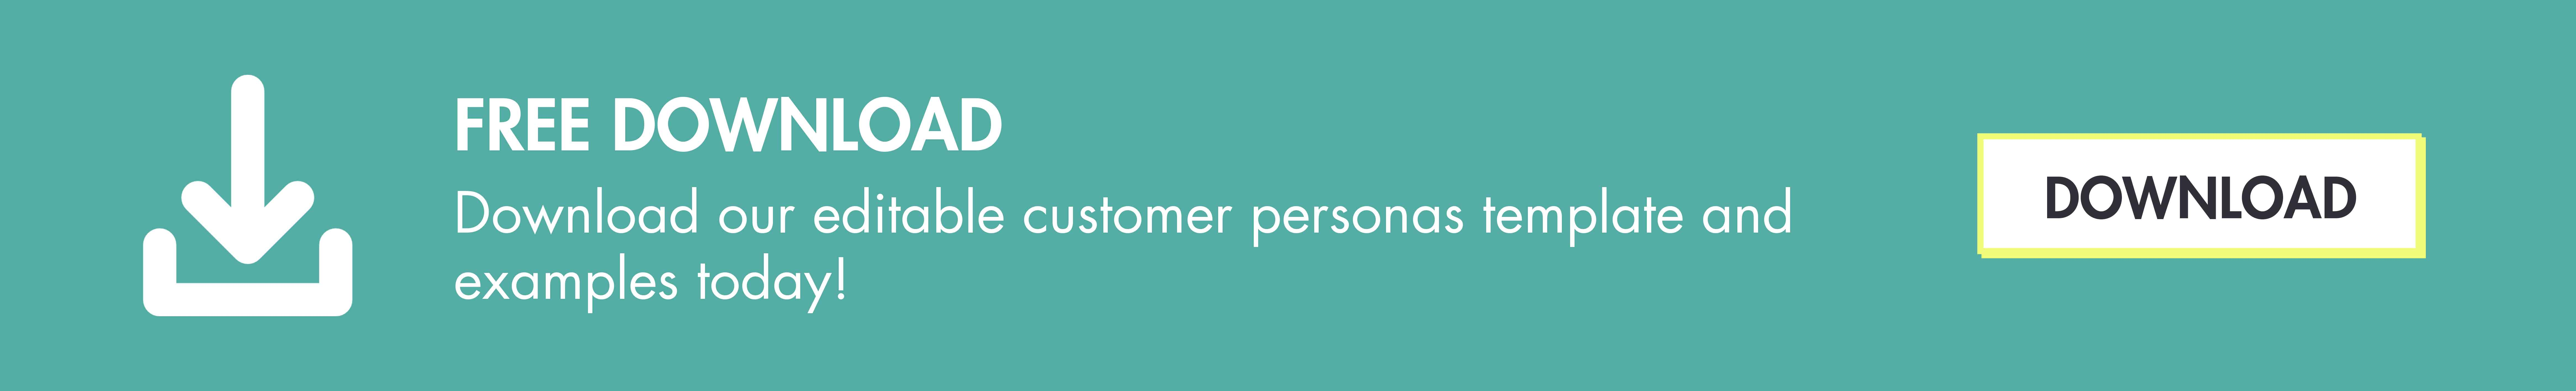 Download Customer Personas Template